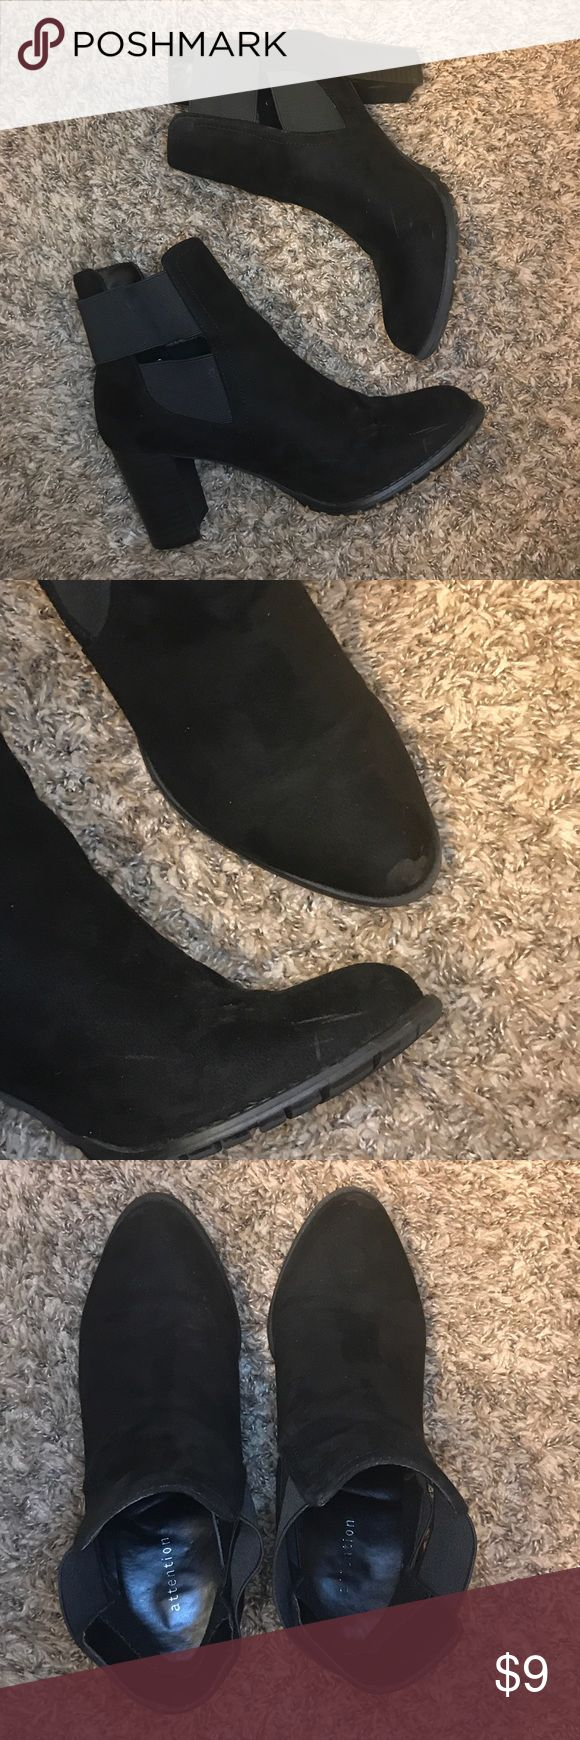 Black booties block heel 8 Women's ok condition Good condition, there is a couple scratches and tad scuff but should be able to be fixed easily I would think. A little big for me. These are from Kmart. 🙂Smoke & pet free home 👍bundle discounts 🗯offer button plz ⭐️Fast Shipping ⭐️5 star ratings attention Shoes Ankle Boots & Booties